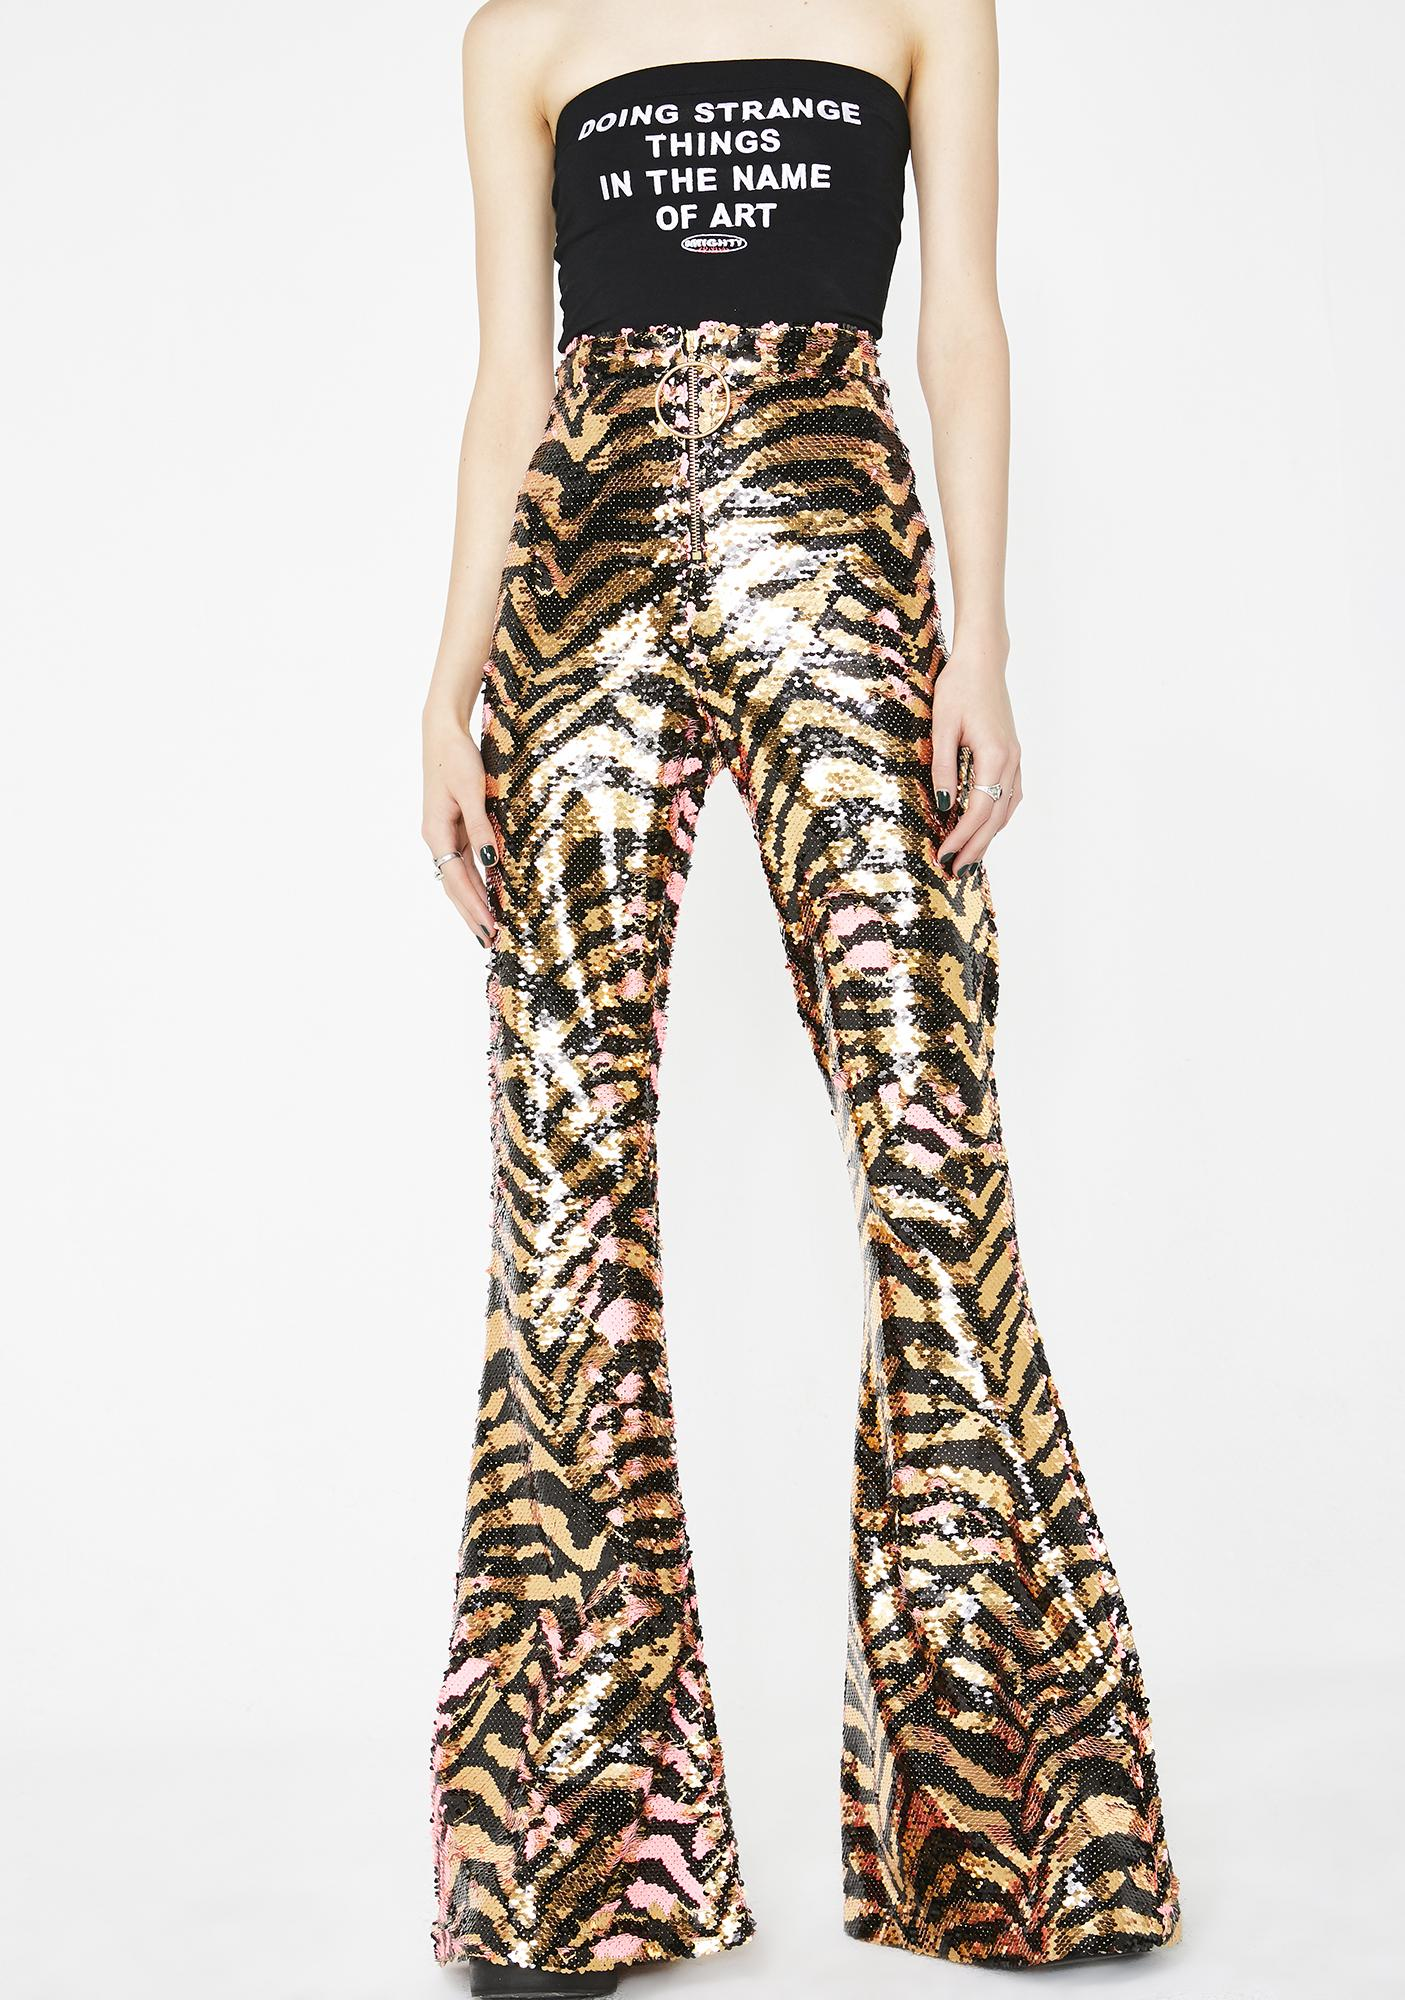 Elsie & Fred Tina Reverse Sequin Party Flares